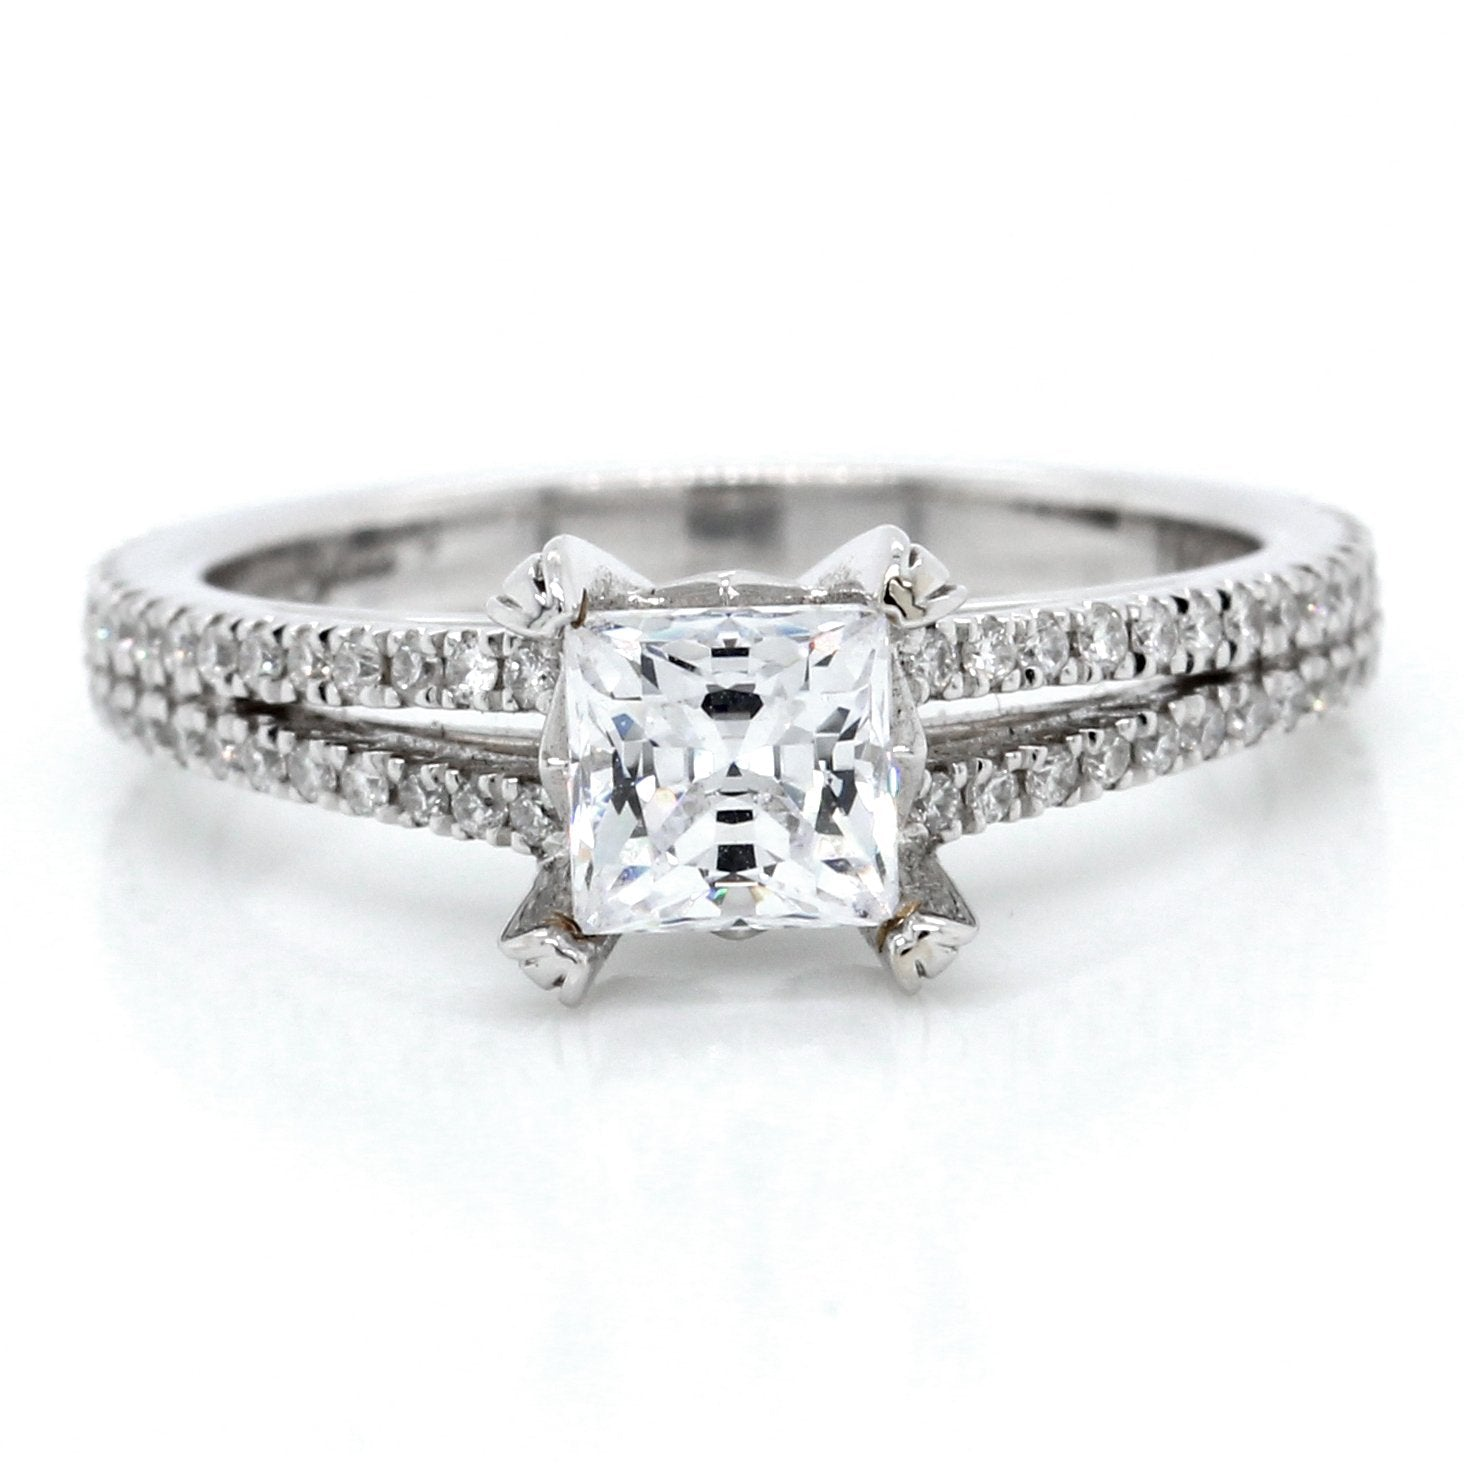 18K White Gold Split Shank Engagement Ring